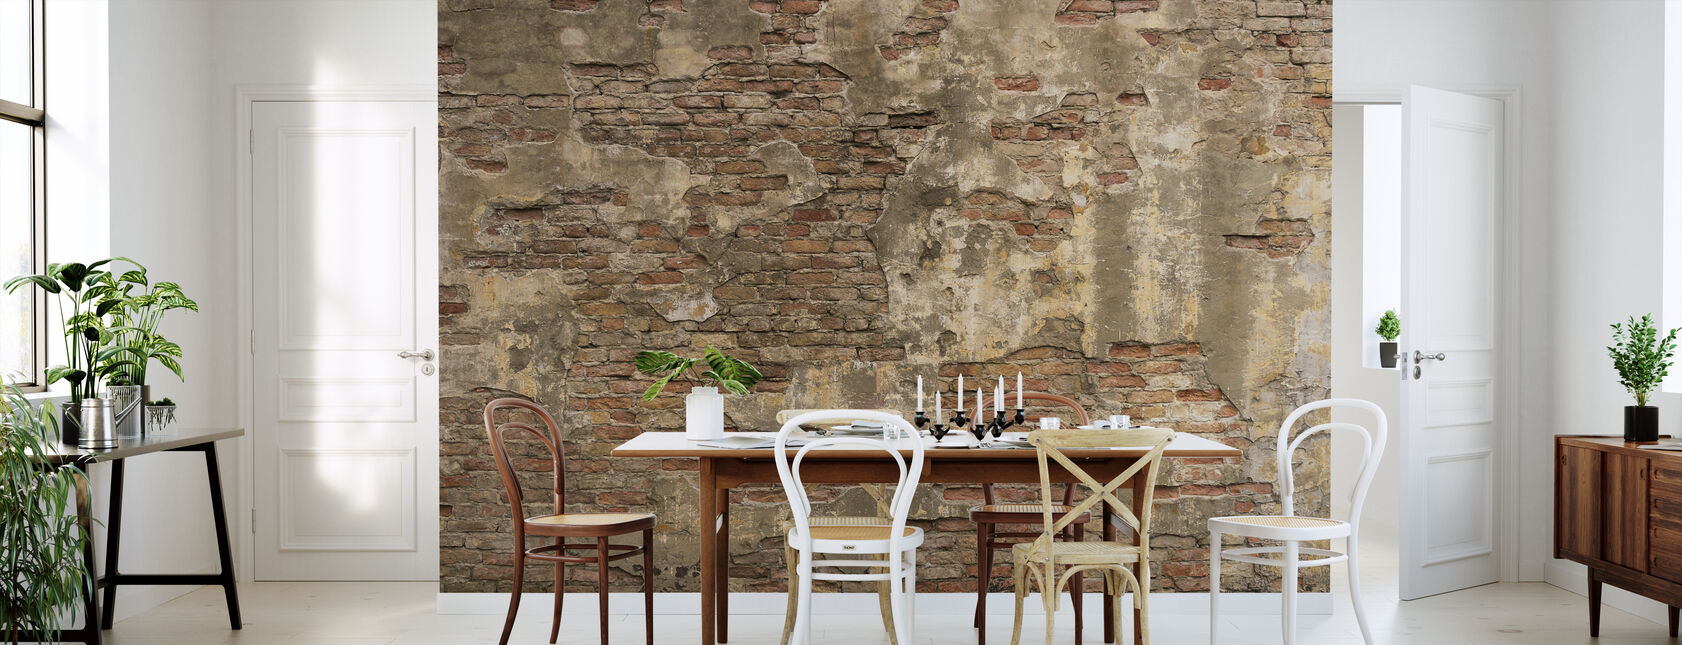 Old Stone Wall - Wallpaper - Kitchen